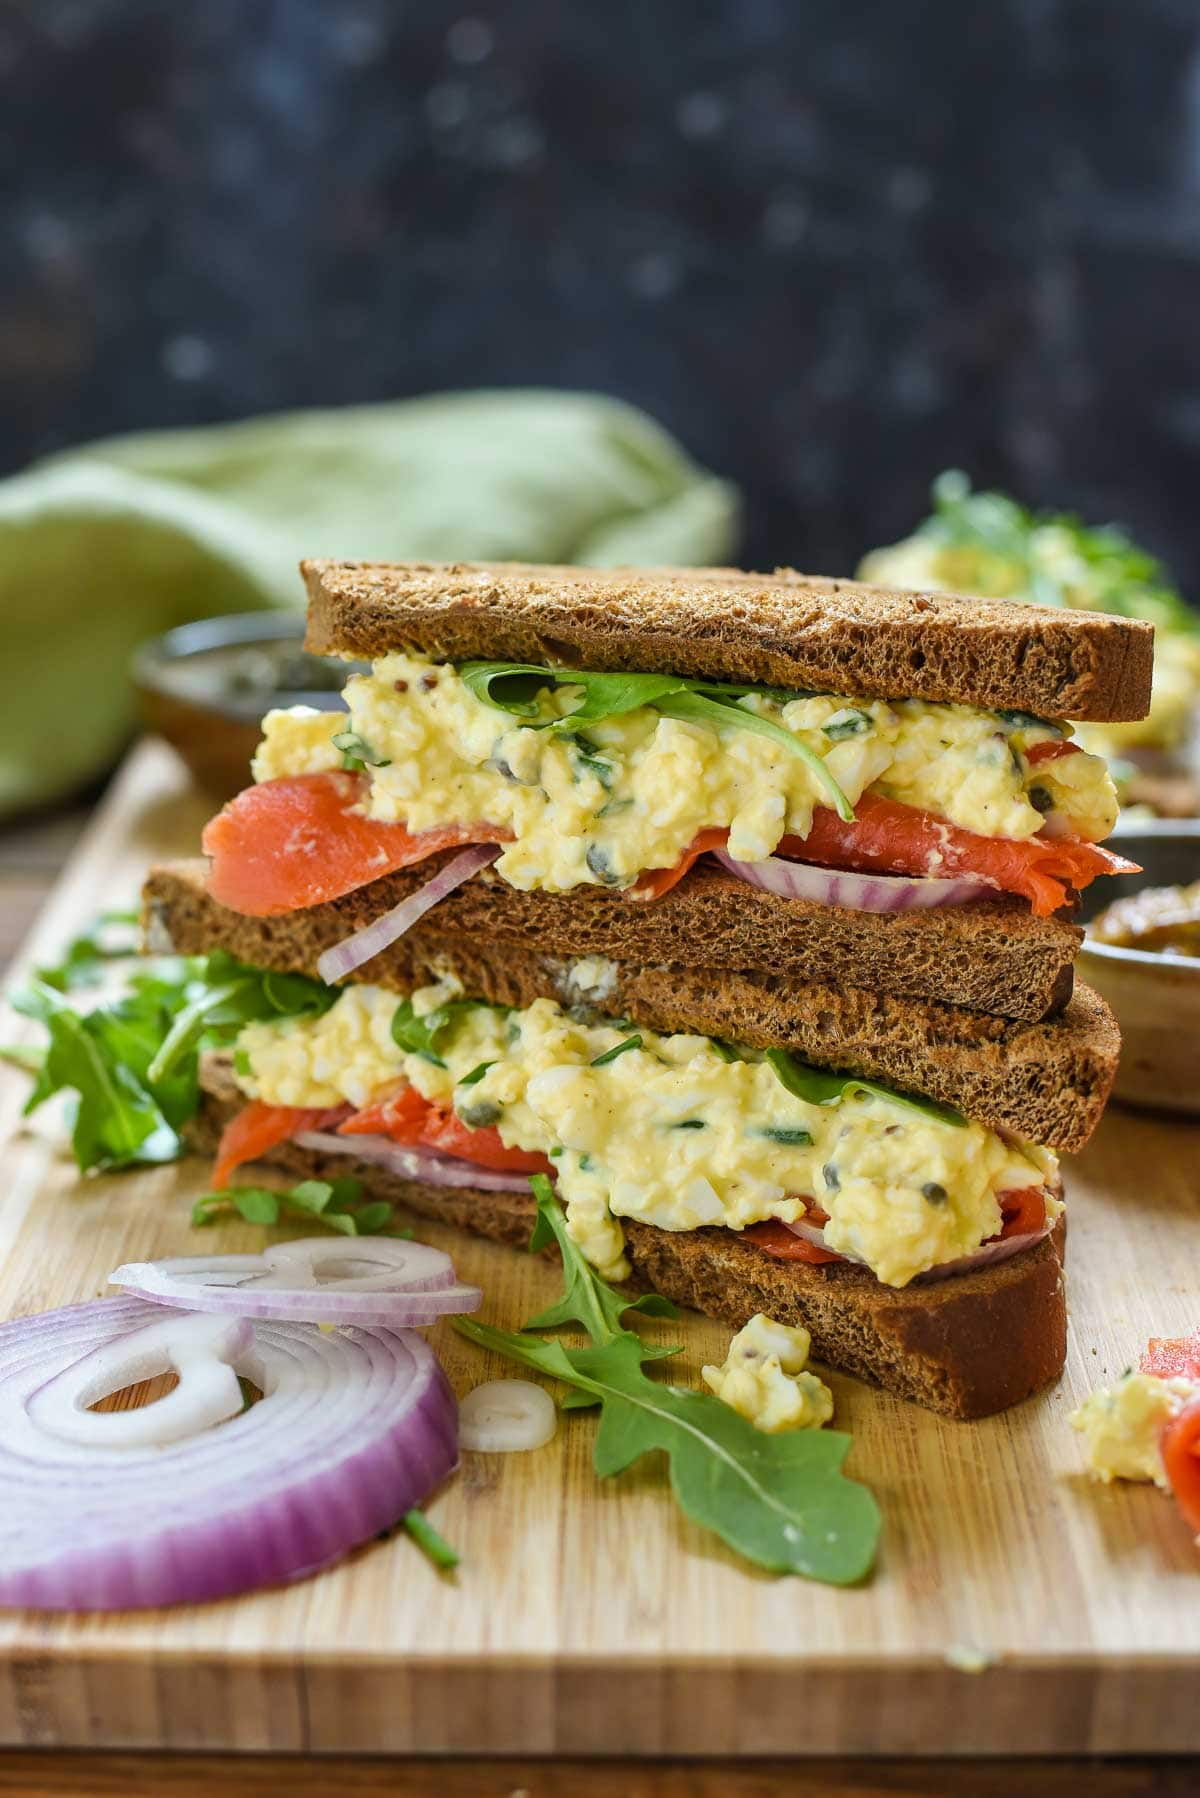 Smoked Salmon Egg Salad Sandwiches are a great quick lunch or spring shower idea. Perfect for using up hardboiled eggs!